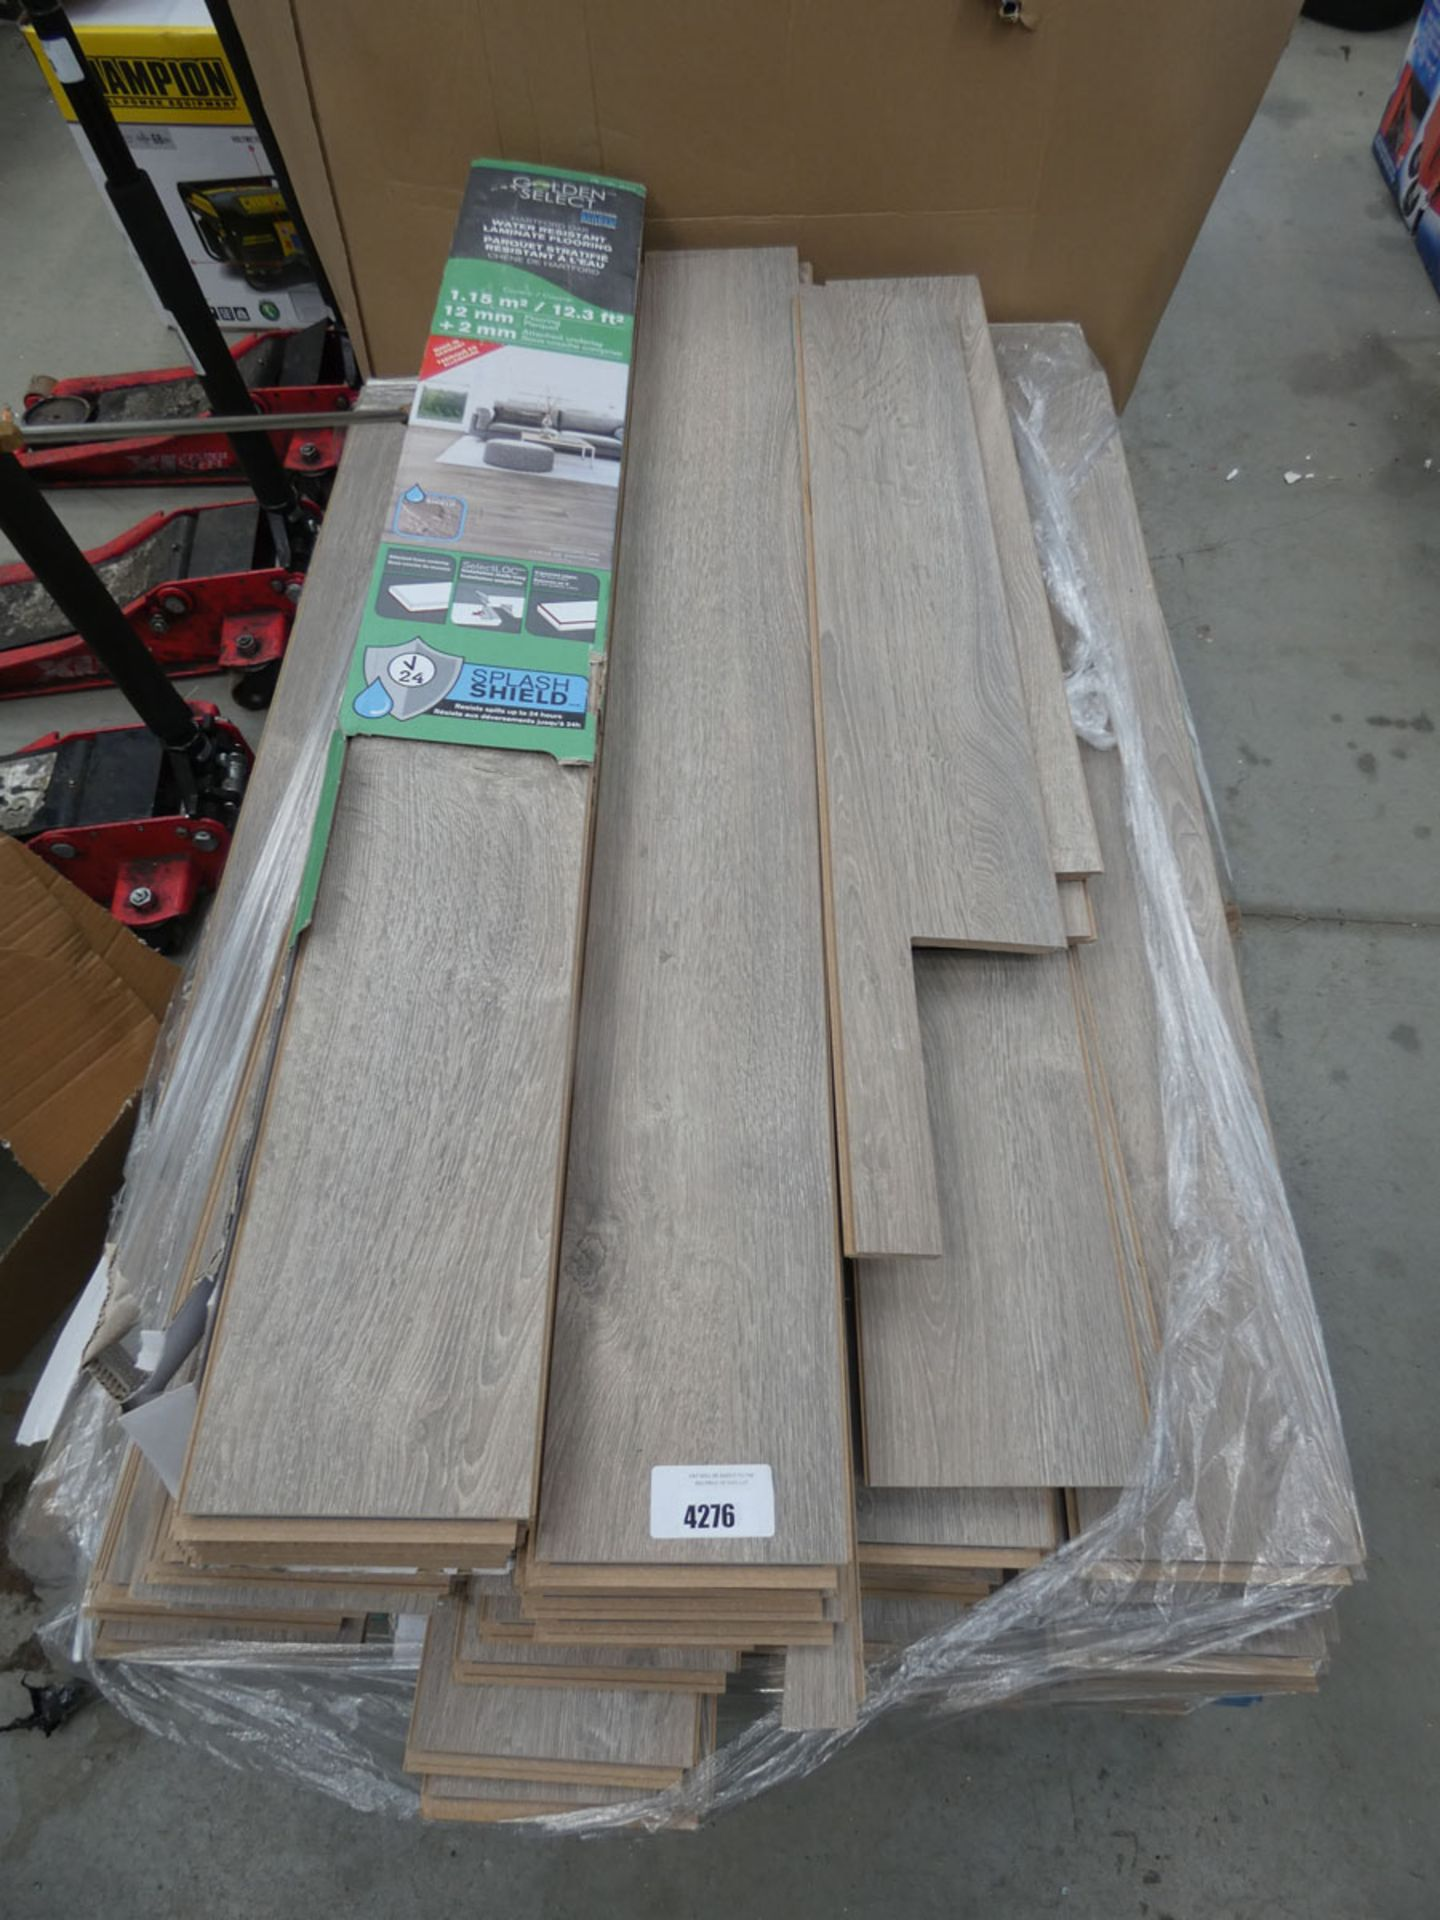 4438 Large pallet of Golden Select oak coloured flooring Used, some pieces damaged